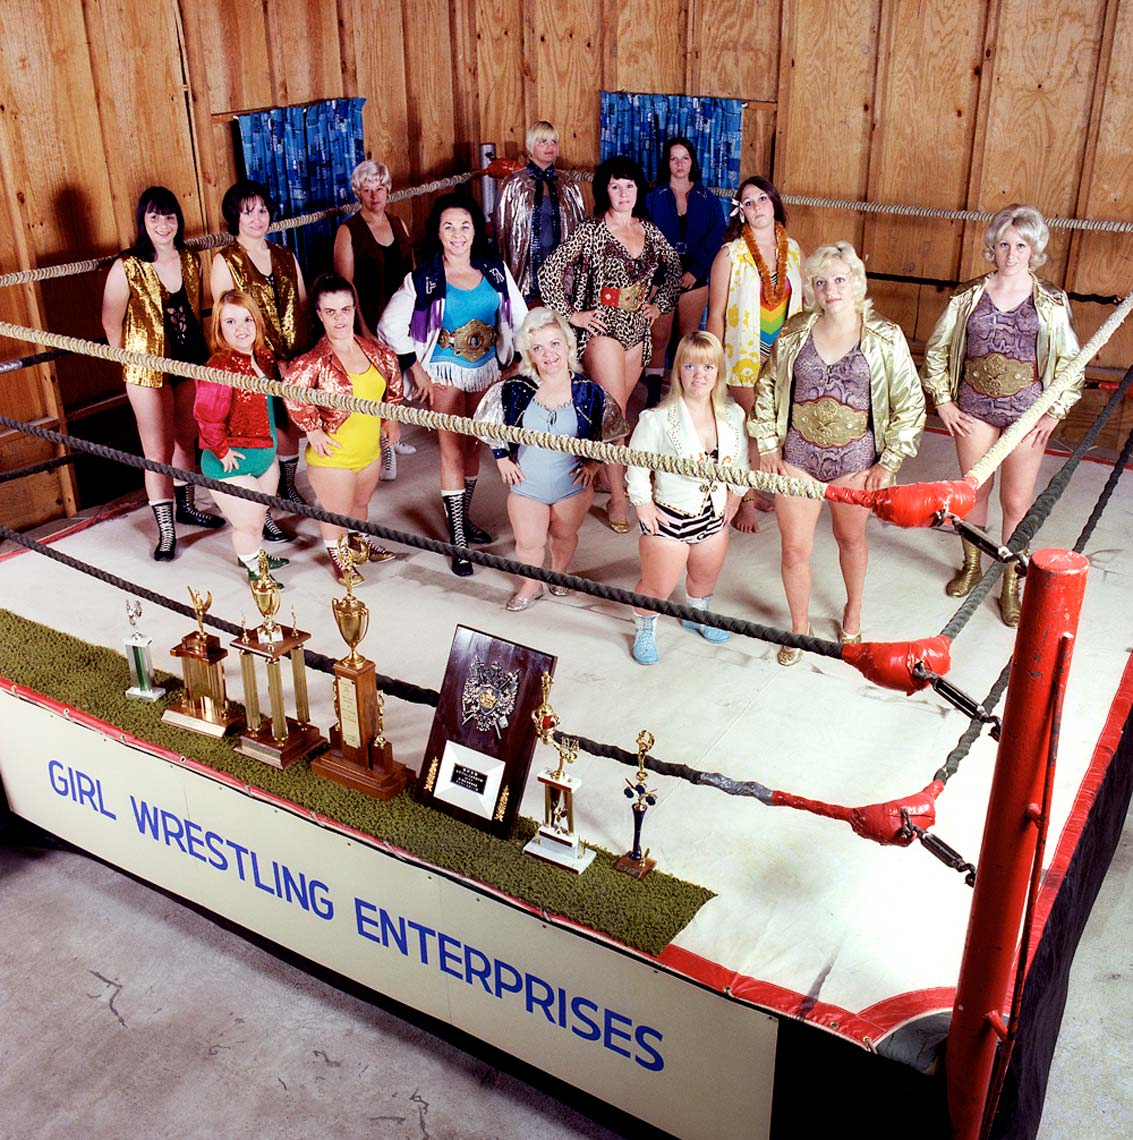 GIRL WRESTLING ENTERPRISES; COLUMBIA, SC